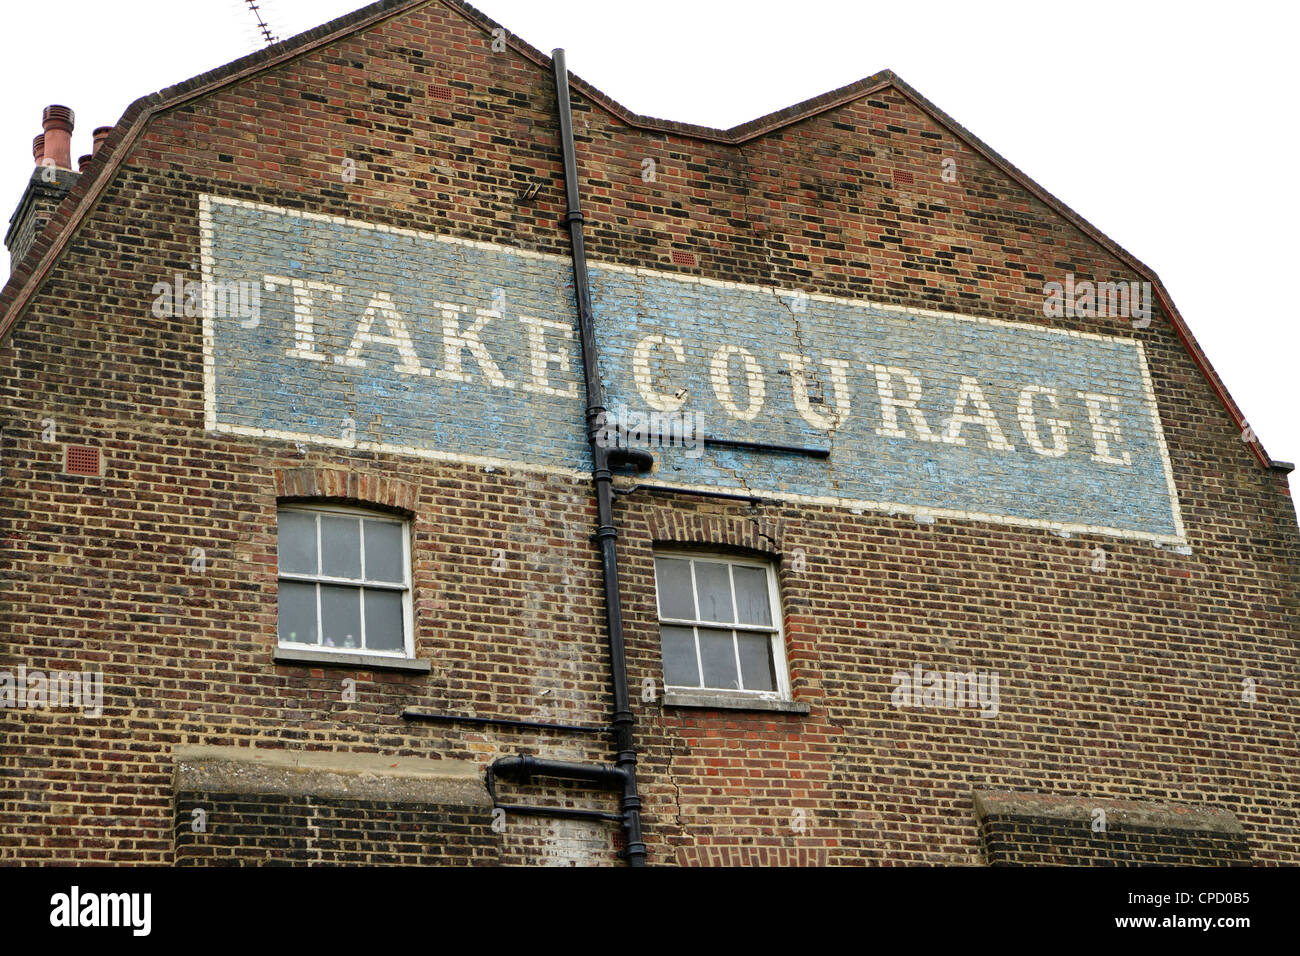 Painted 'Take Courage' beer advertisement on side of building, London, UK - Stock Image